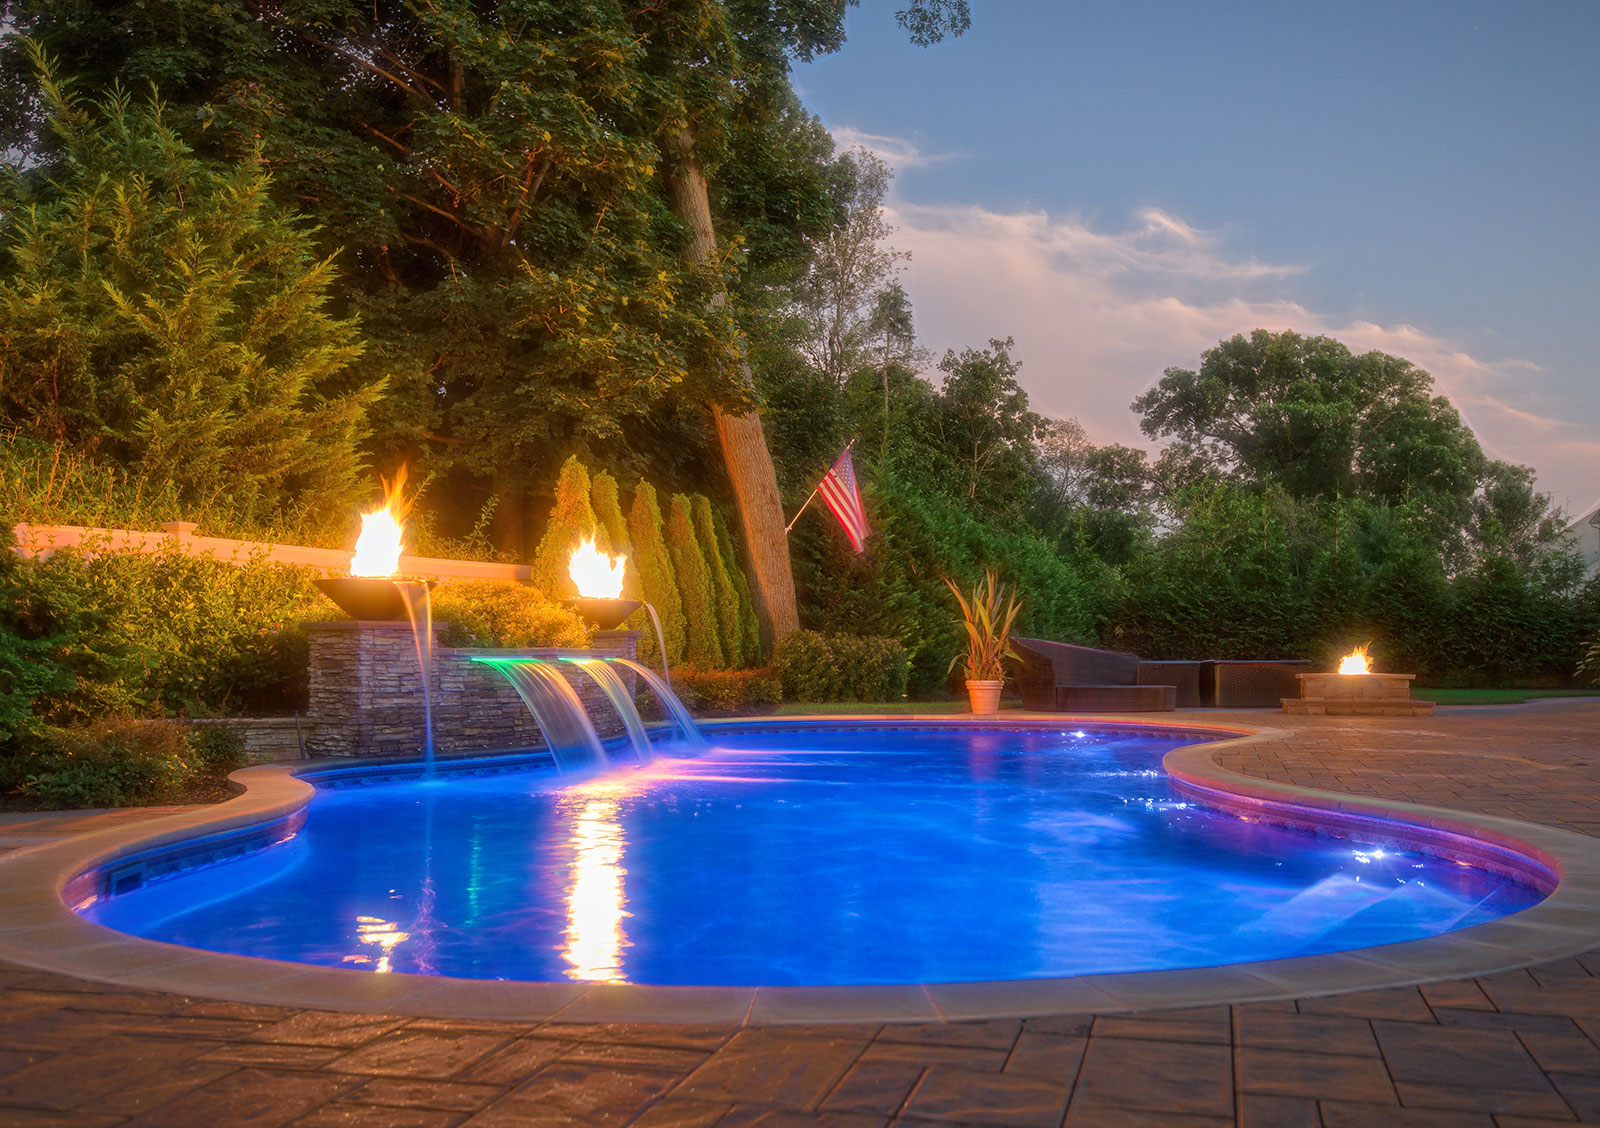 Residential Pool Construction with Special Features